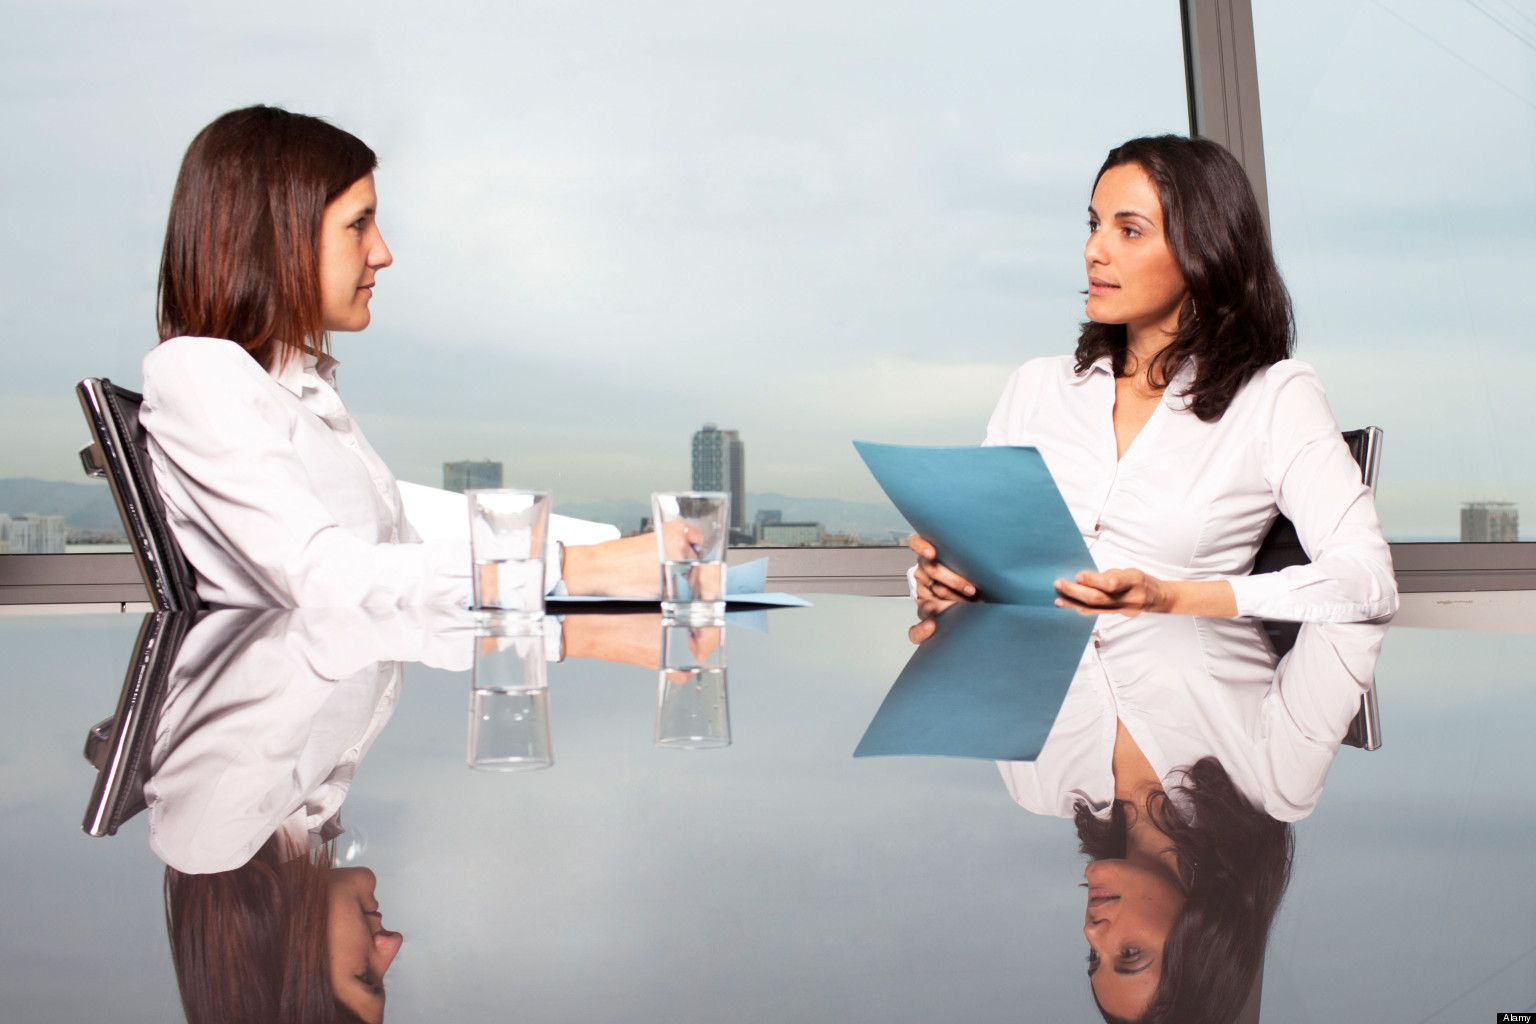 CEP8C4 Recruiter checking the candidate during job interview